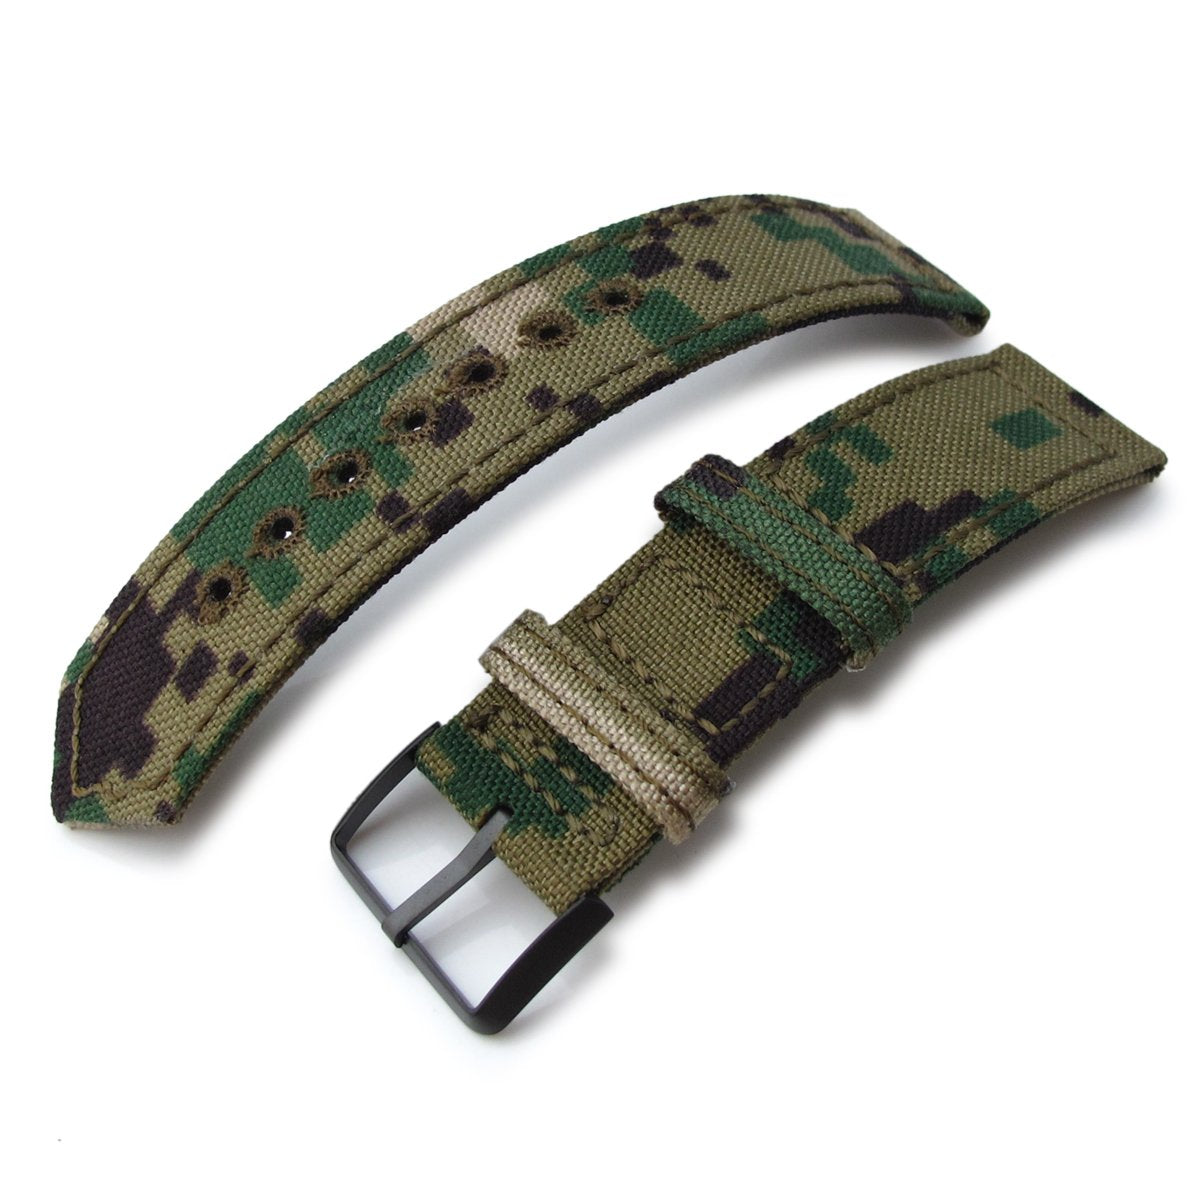 20mm 21mm or 22mm MiLTAT WW2 2-piece Woodland Camo Cordura 1000D Watch Band with lockstitch round hole PVD Black Strapcode Watch Bands